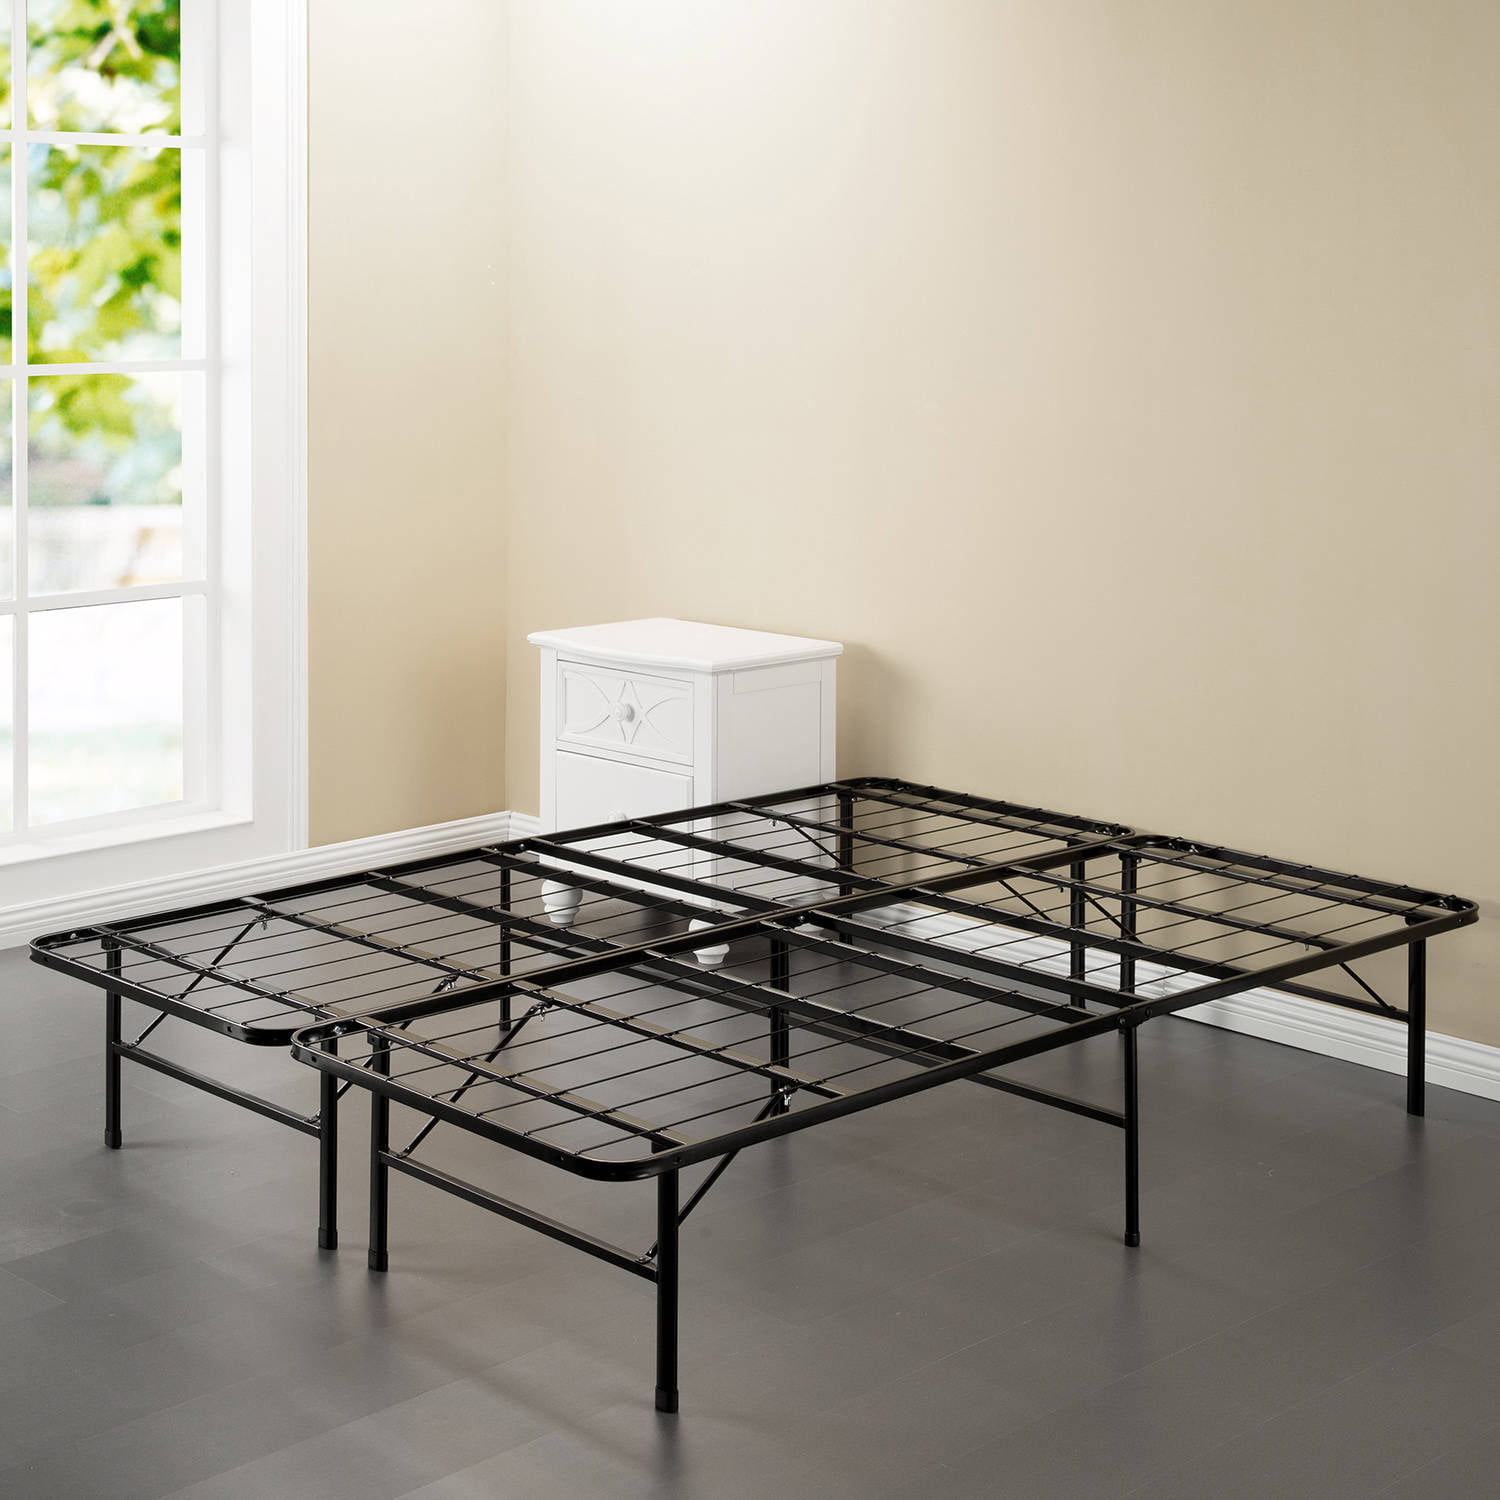 spa sensations steel smart base bed frame black multiple sizes walmartcom - Frame Bed